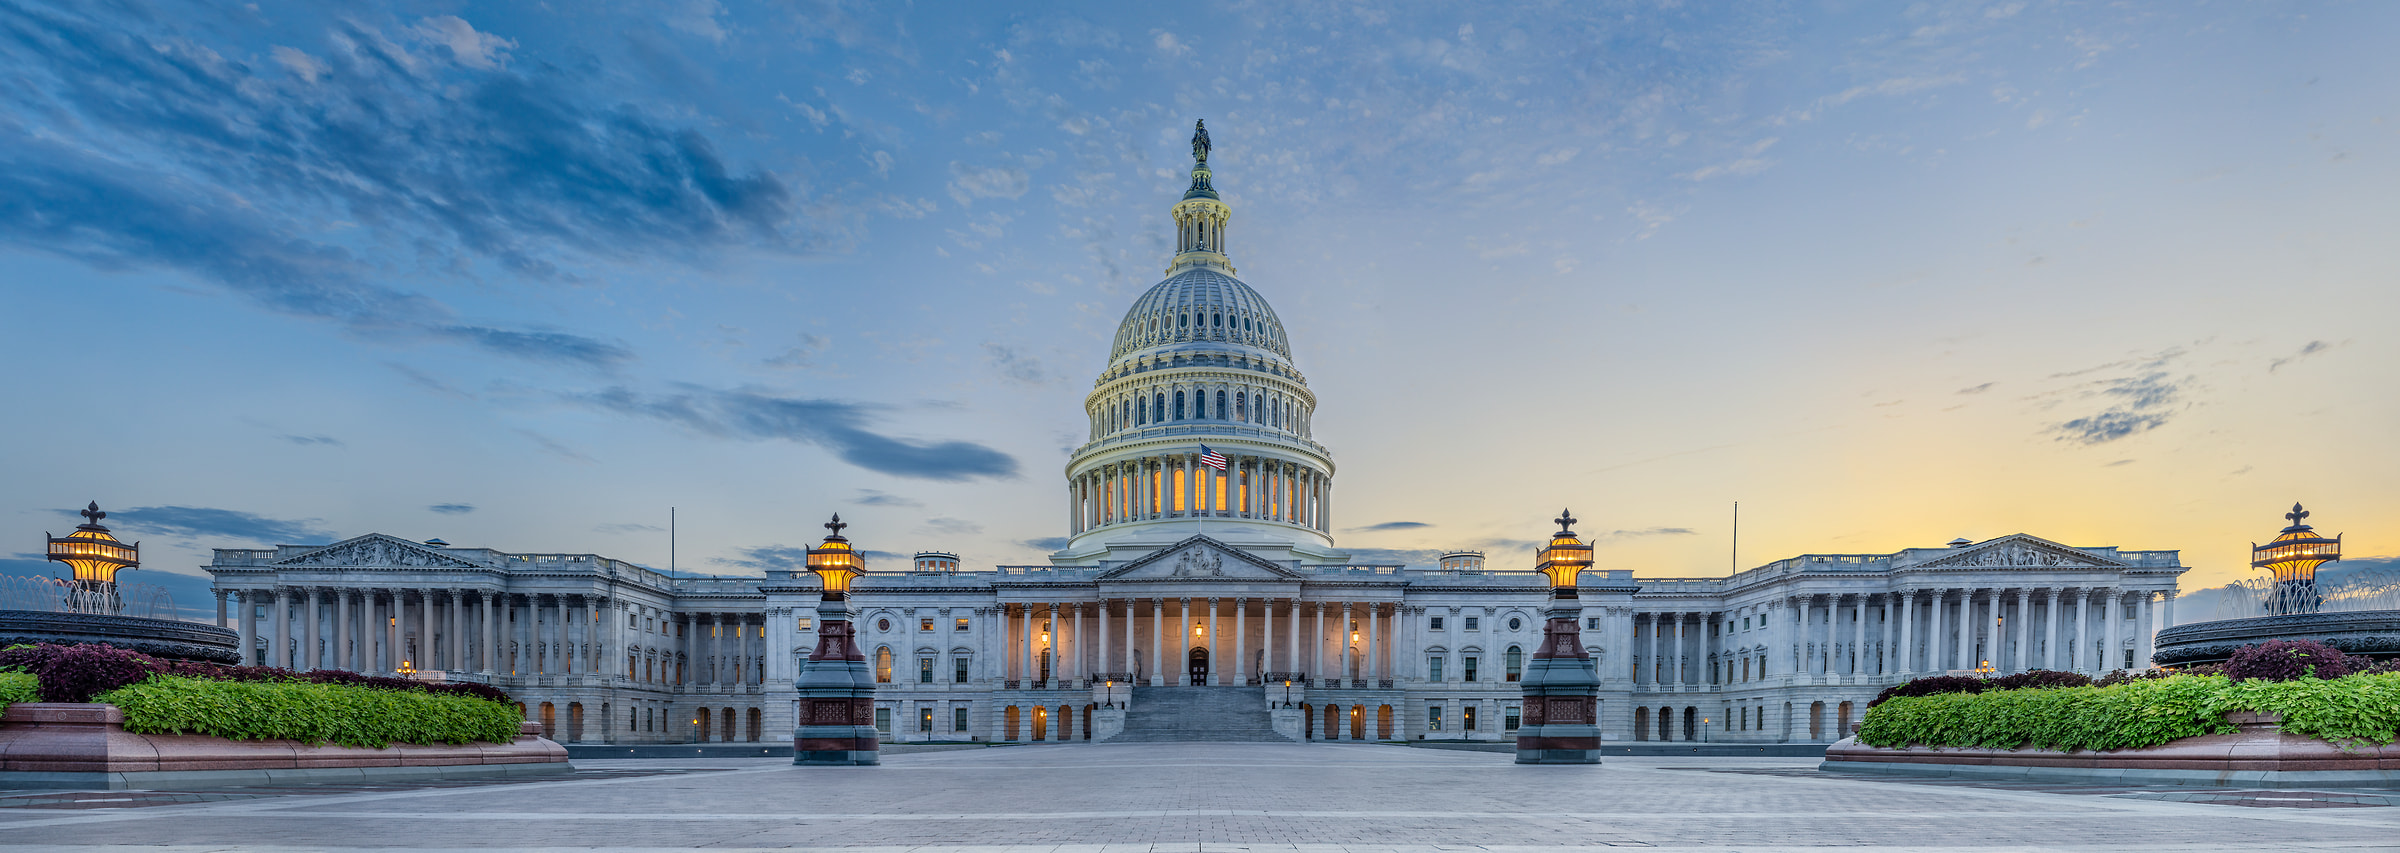 High Resolution Photos Of The U S Capitol